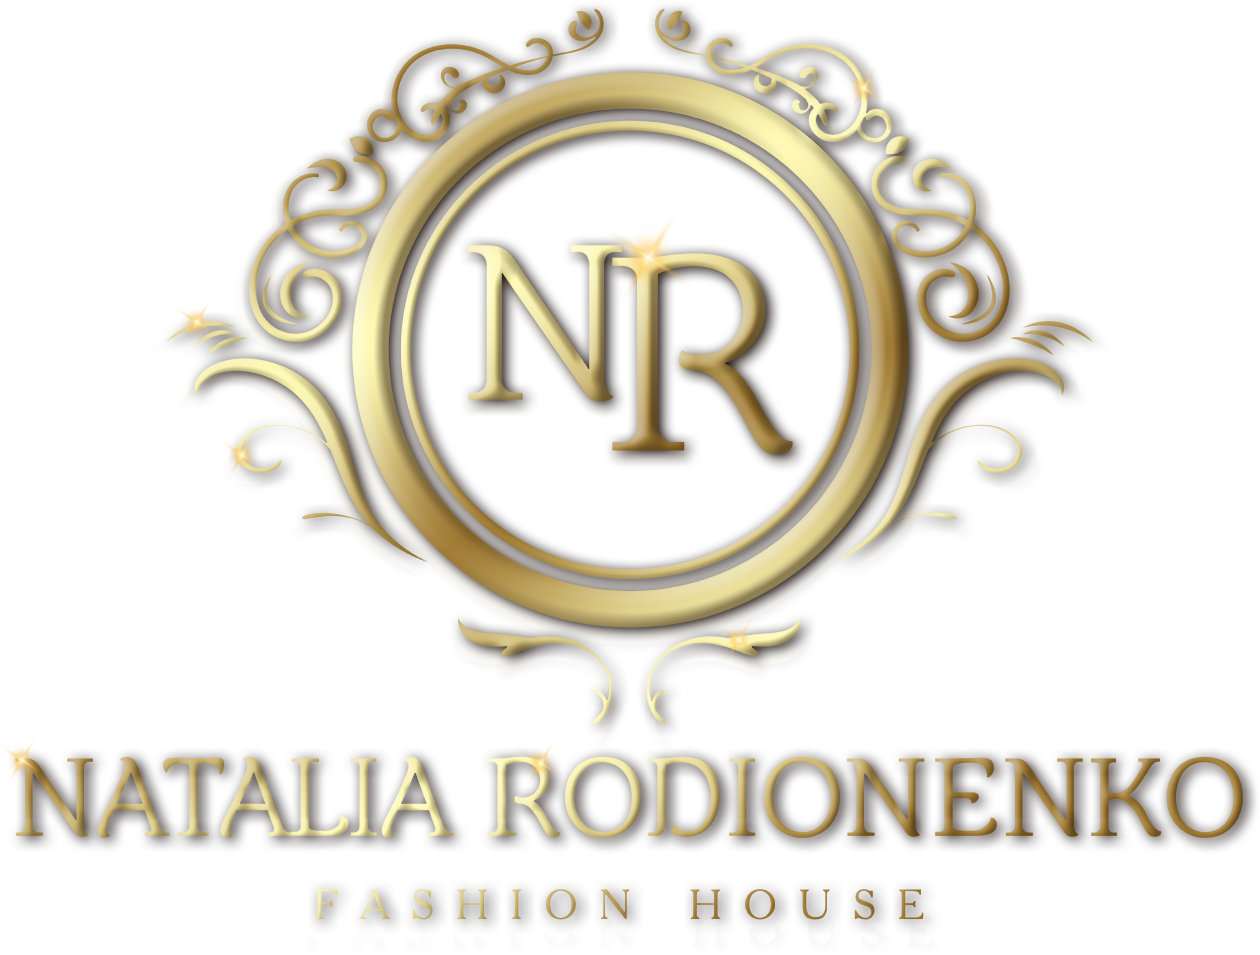 Natalia Rodionenko Fashion House